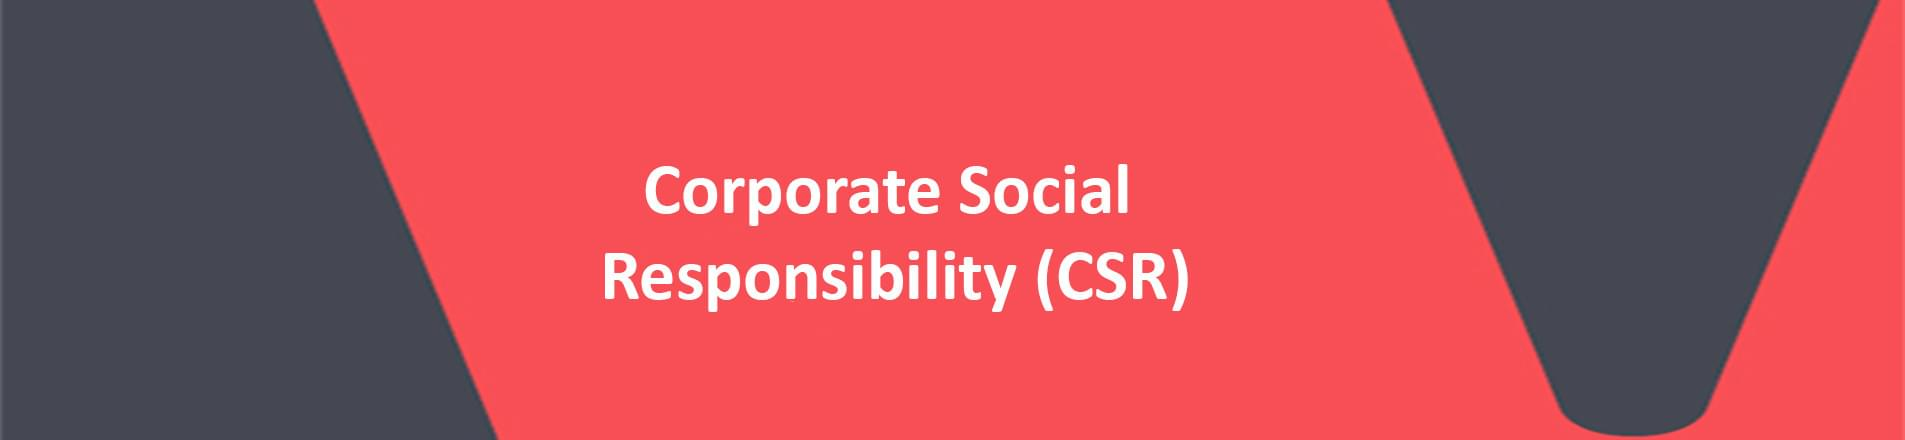 """Banner image with words """"Corporate Social Responsibility""""  red background with white letters"""